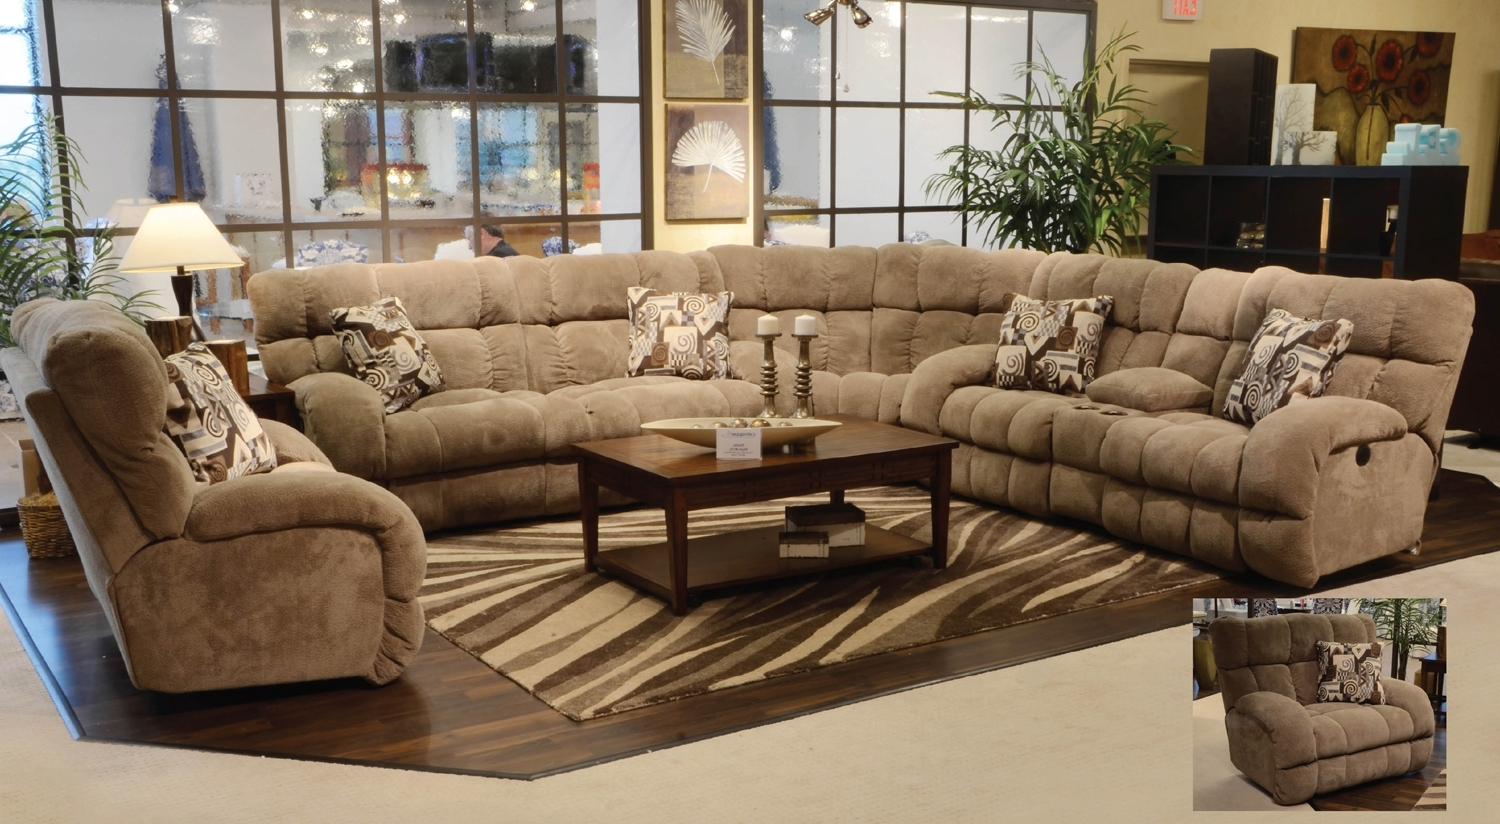 Current Sectional Sofas In Toronto For Sofa : Oversized Sectional Sofas Toronto Oversized Plush Sectional (View 6 of 15)